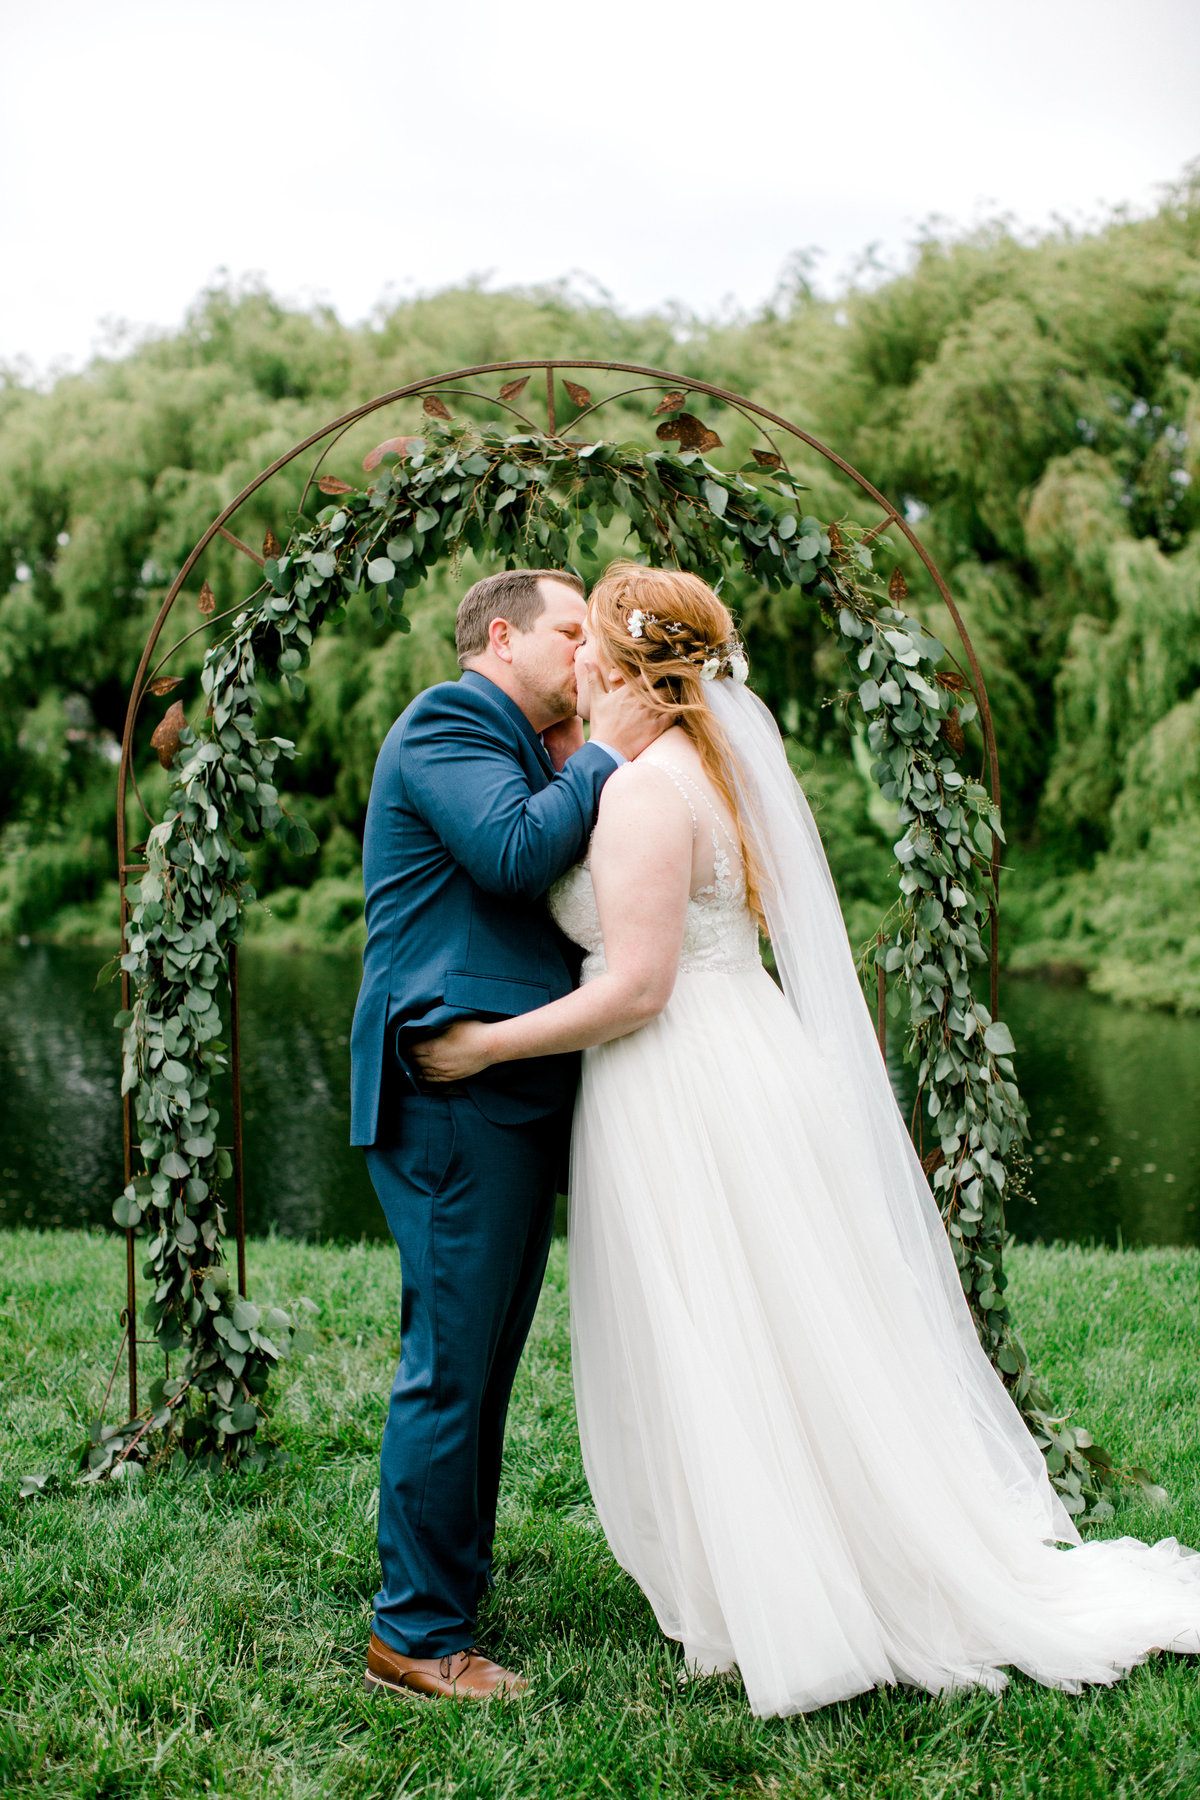 Bride and groom first kiss as husband and wife at Olympias Valley Estate in Petaluma California